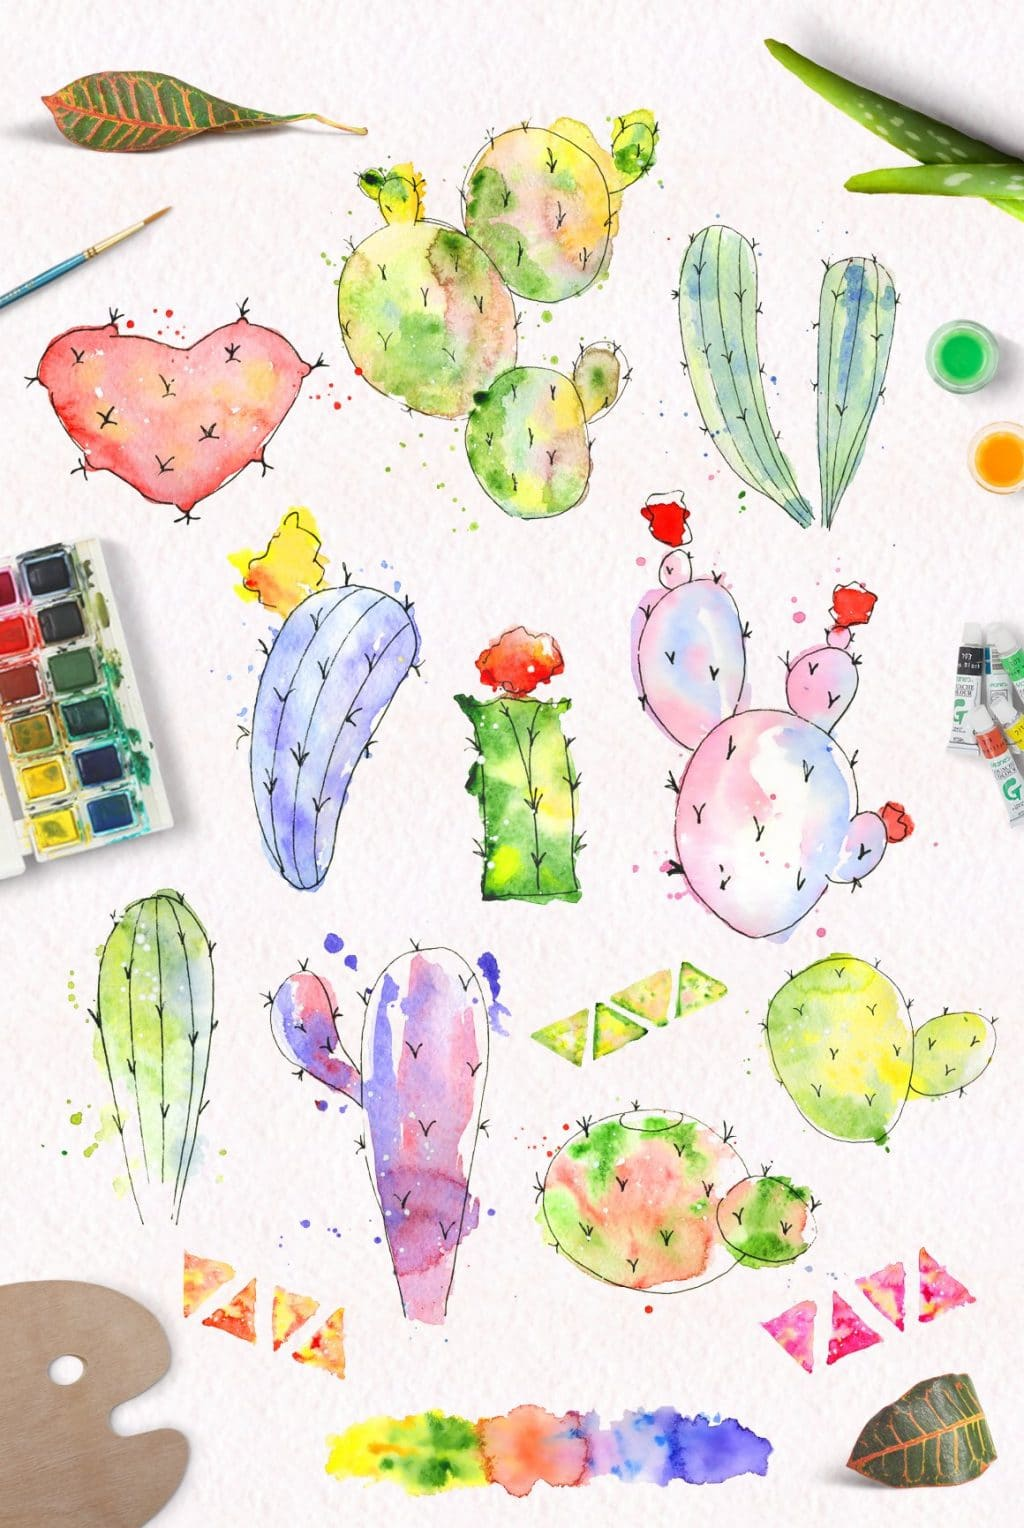 Watercolor Abstract Cactus -$12 - cover 7 1 1